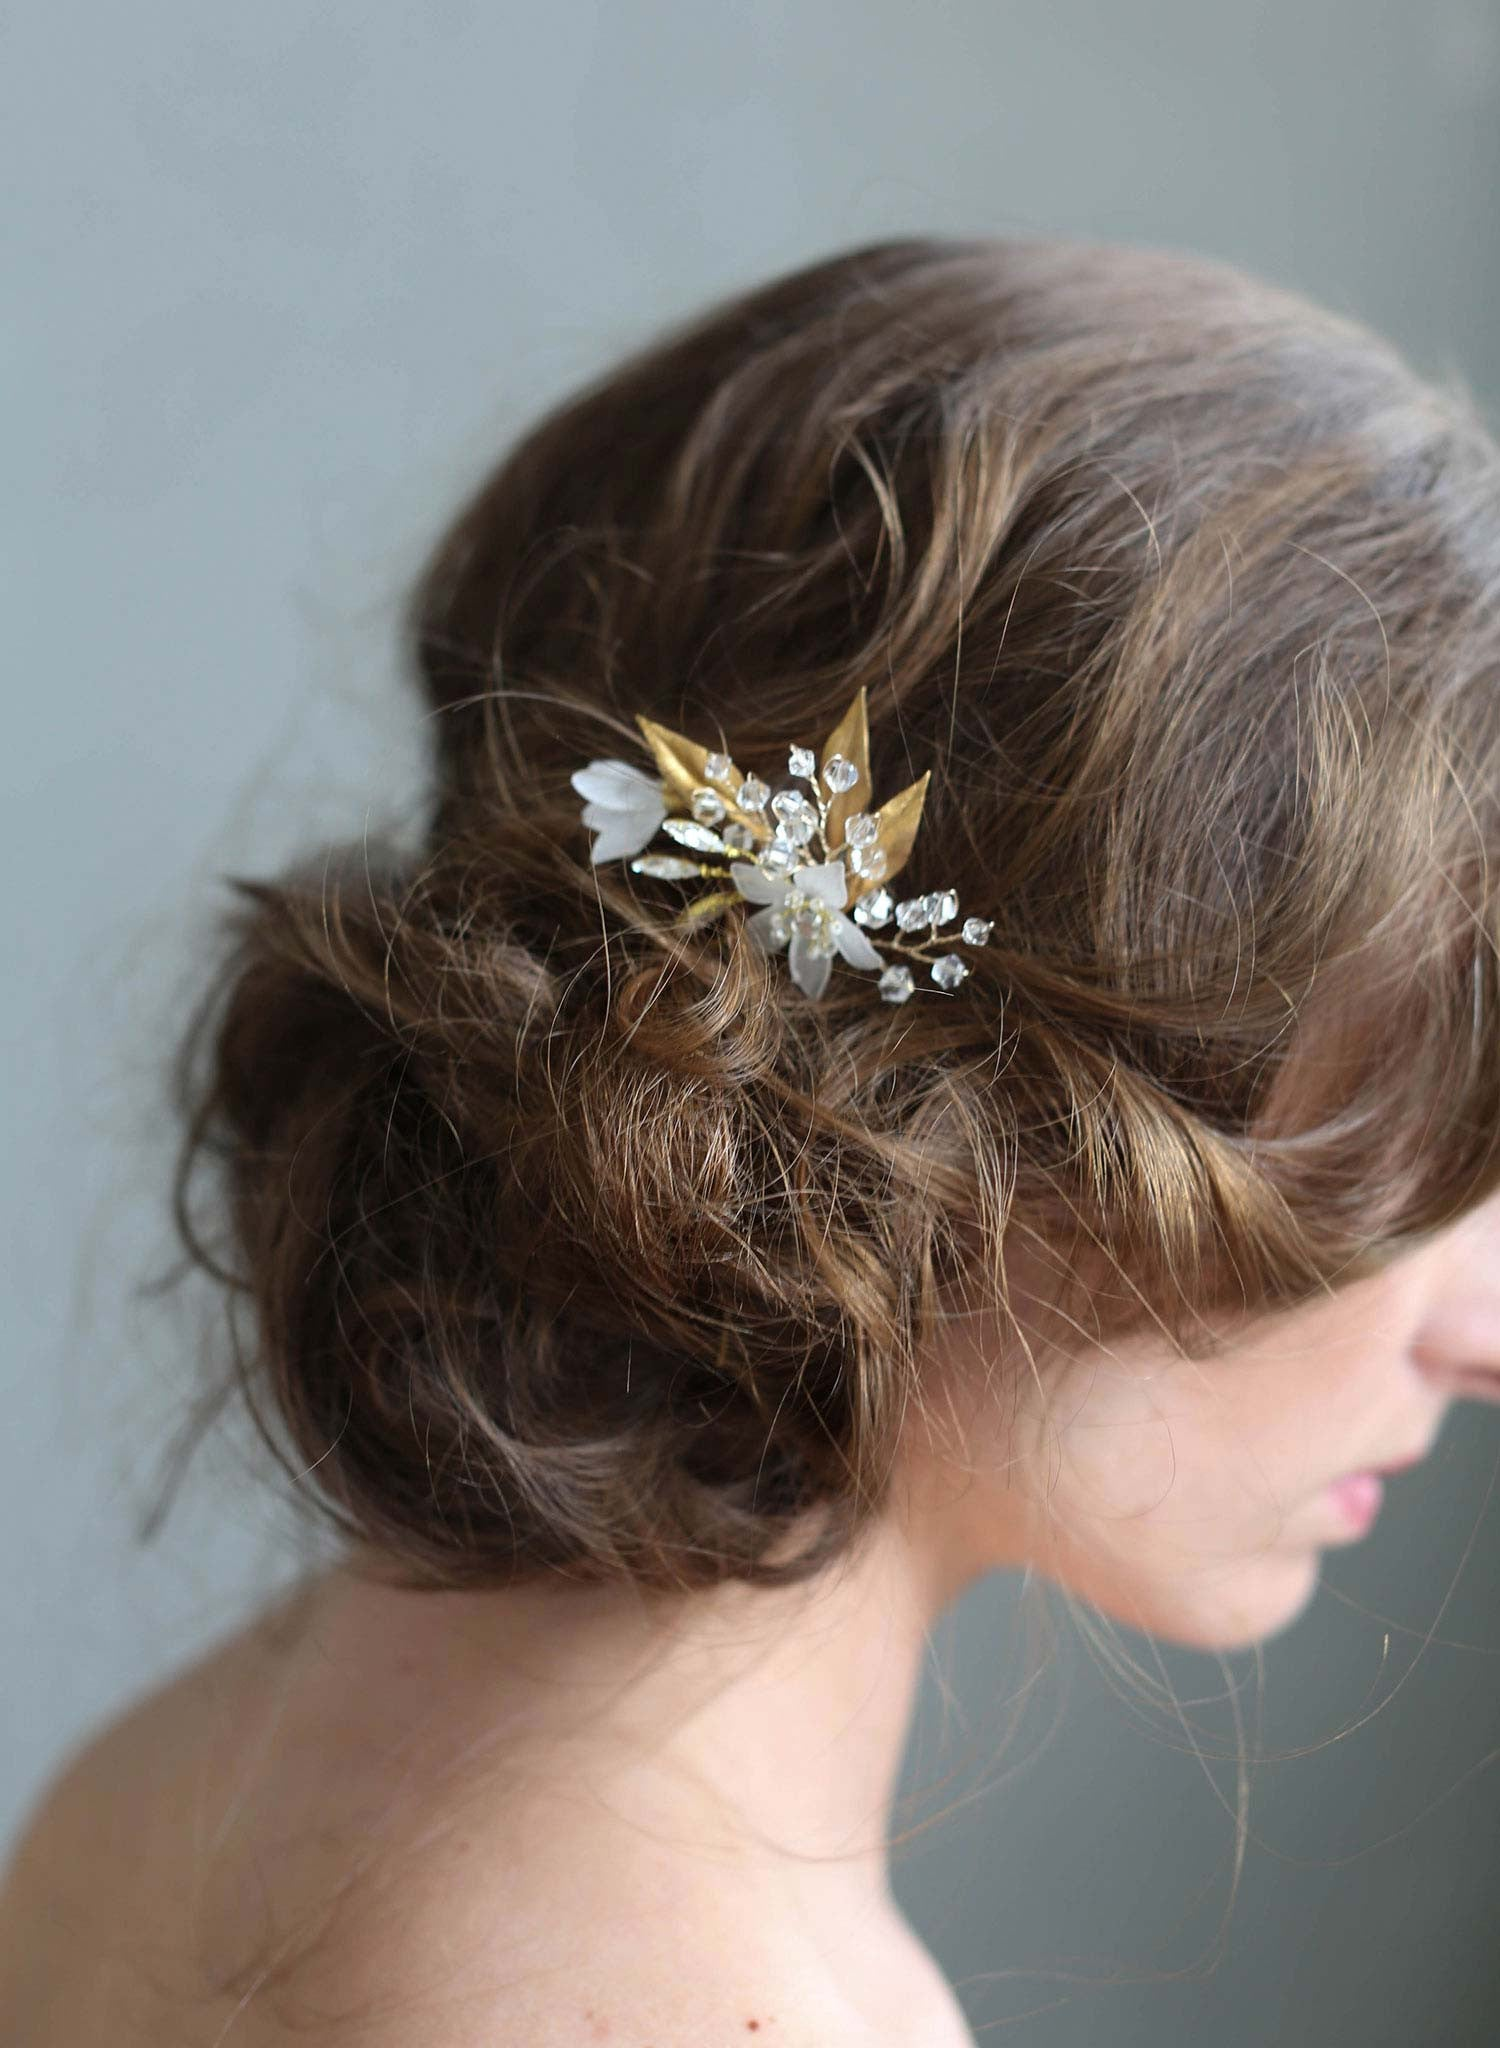 Frosted garden trinkets hairpin - Style #731